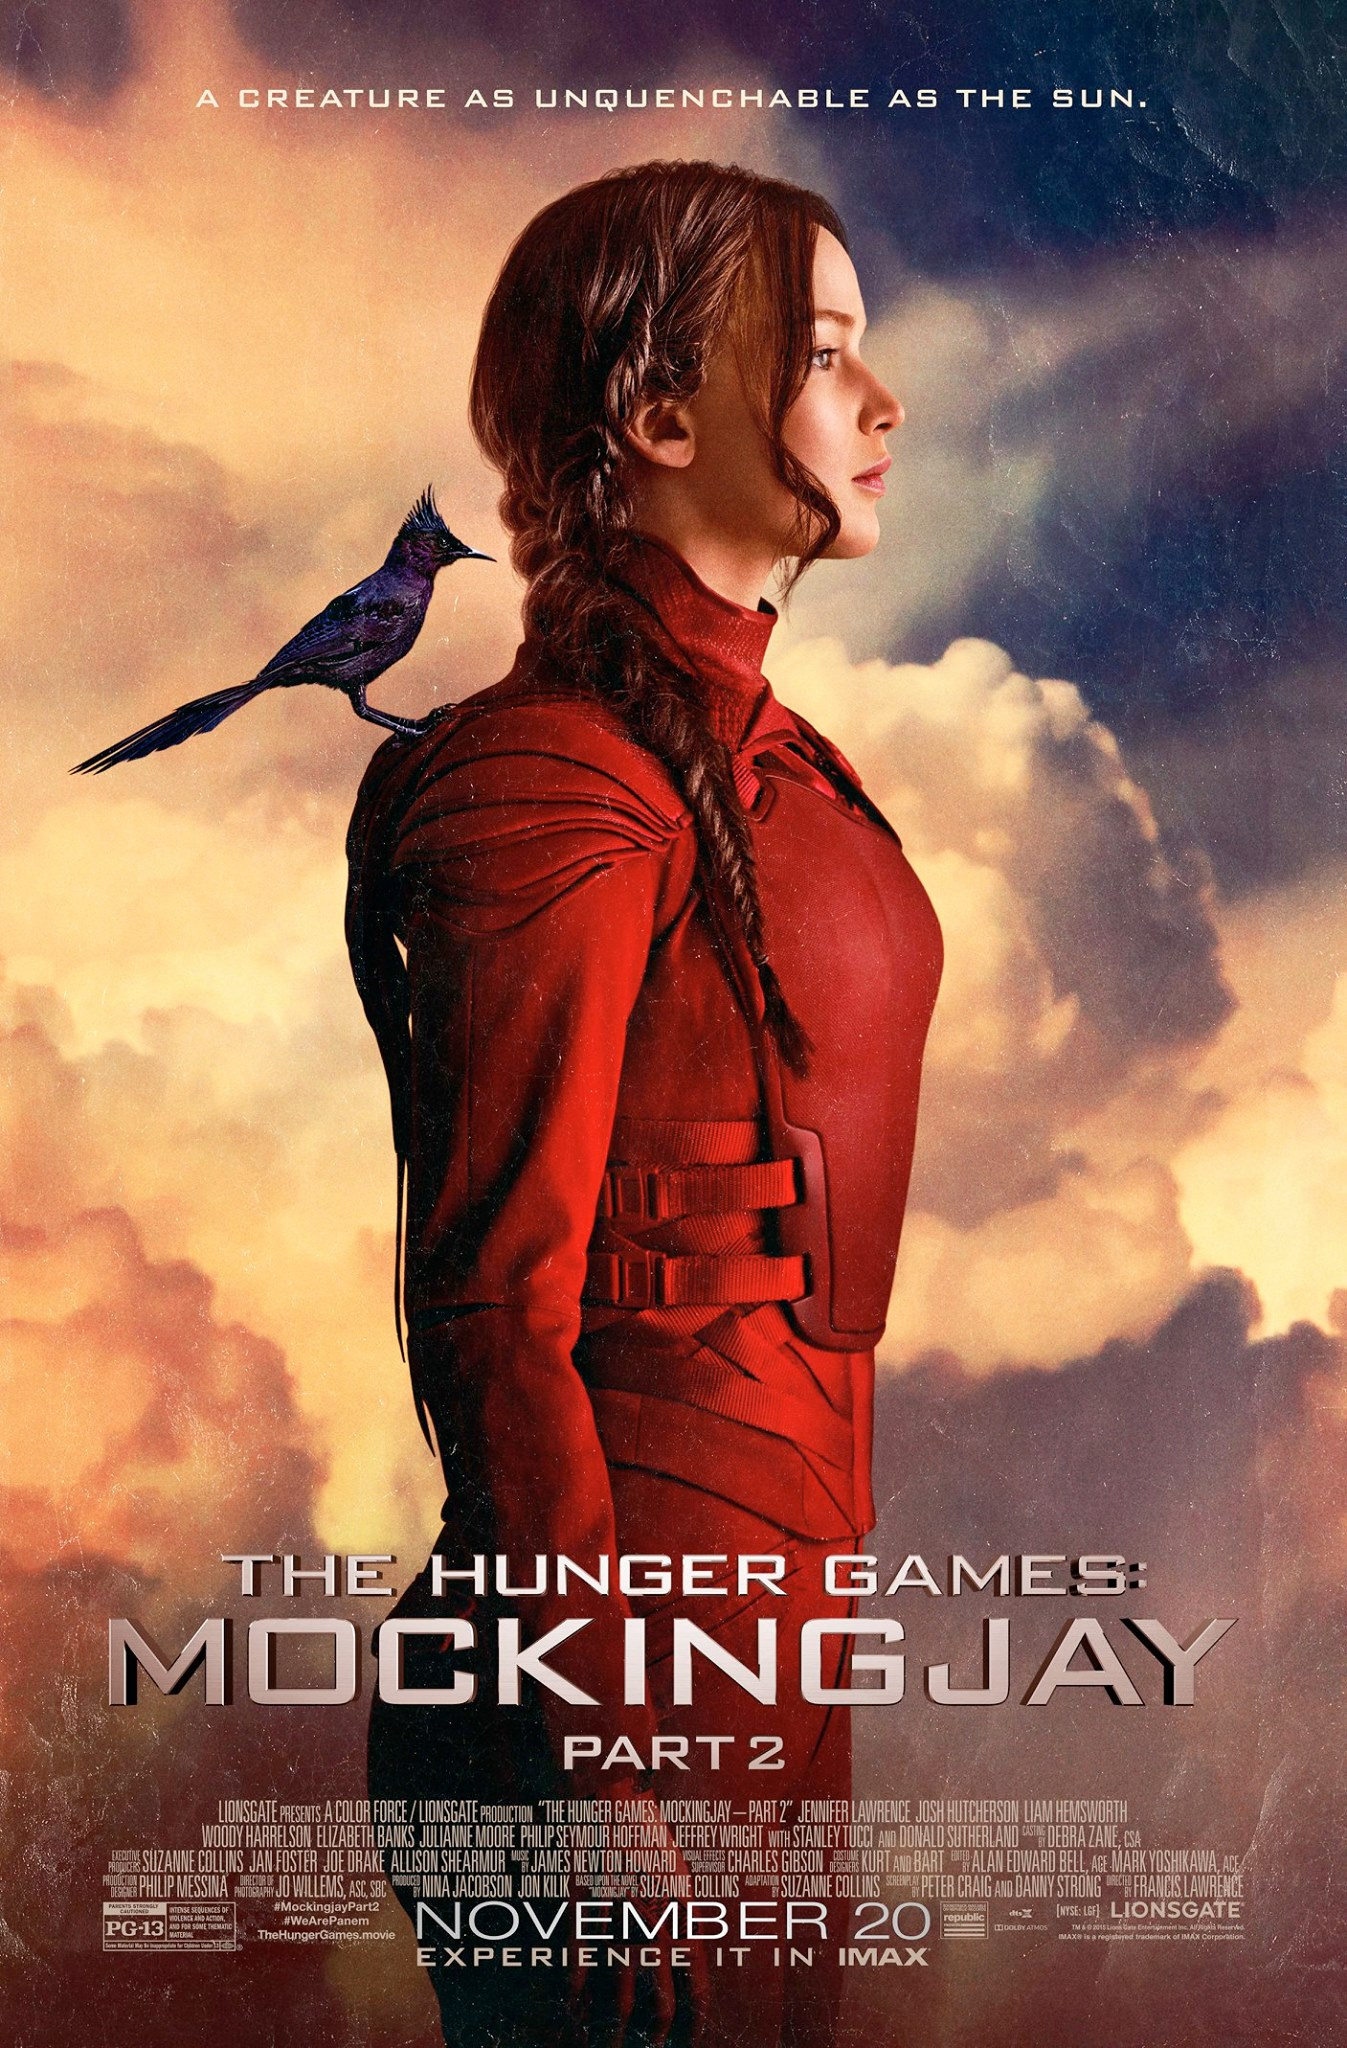 16092015_HG_mockingjay_part2_poster